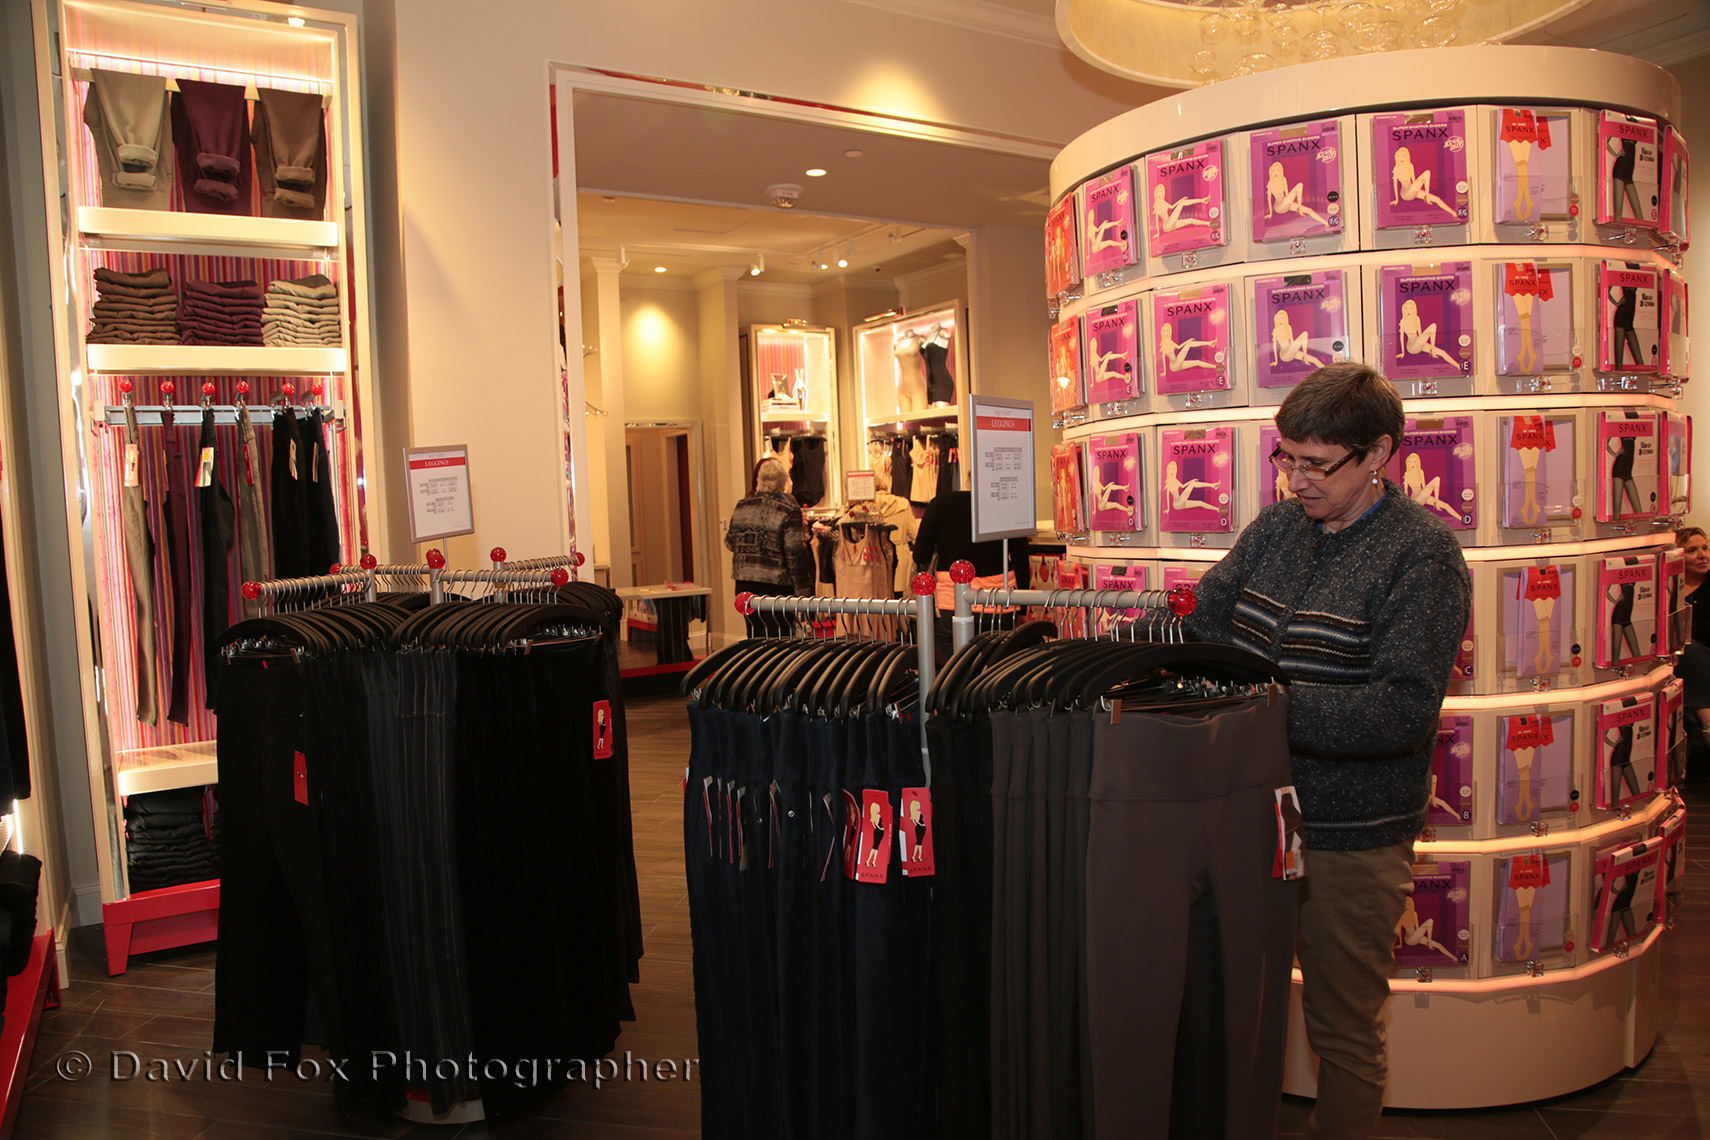 A Shopper checkes out Merchandise at Spanx Store Opening